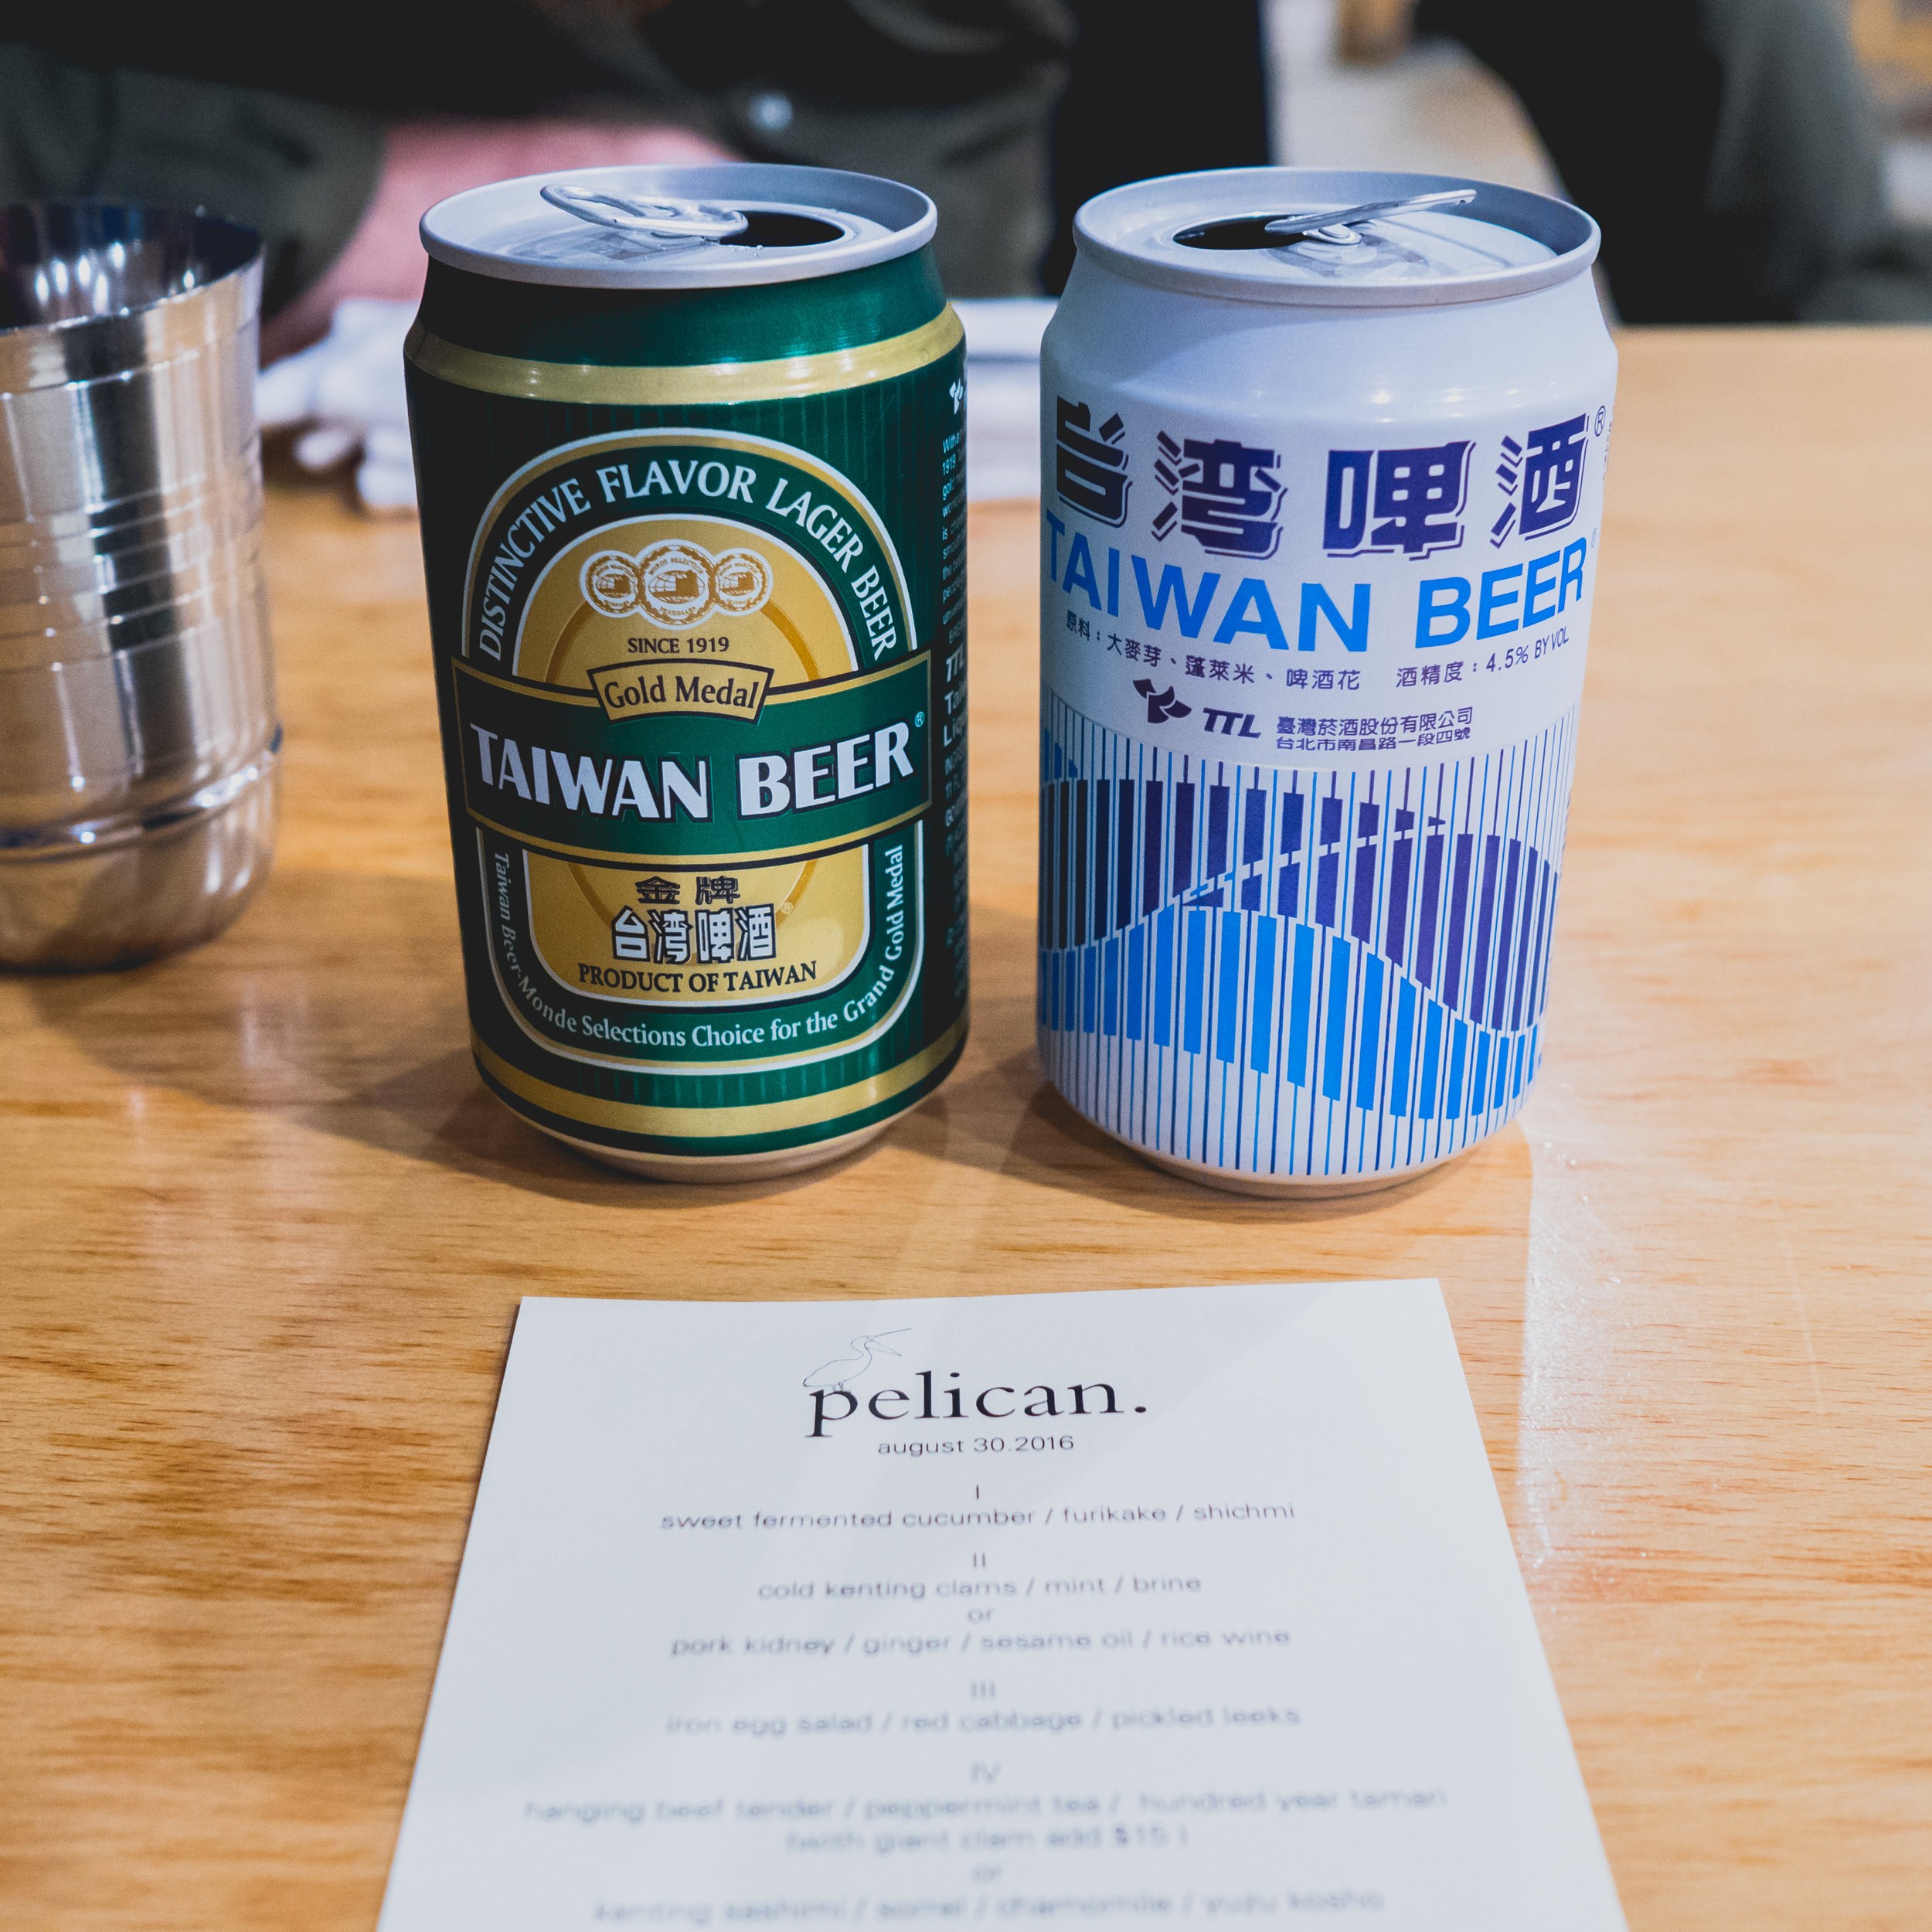 taiwan beer, of course.